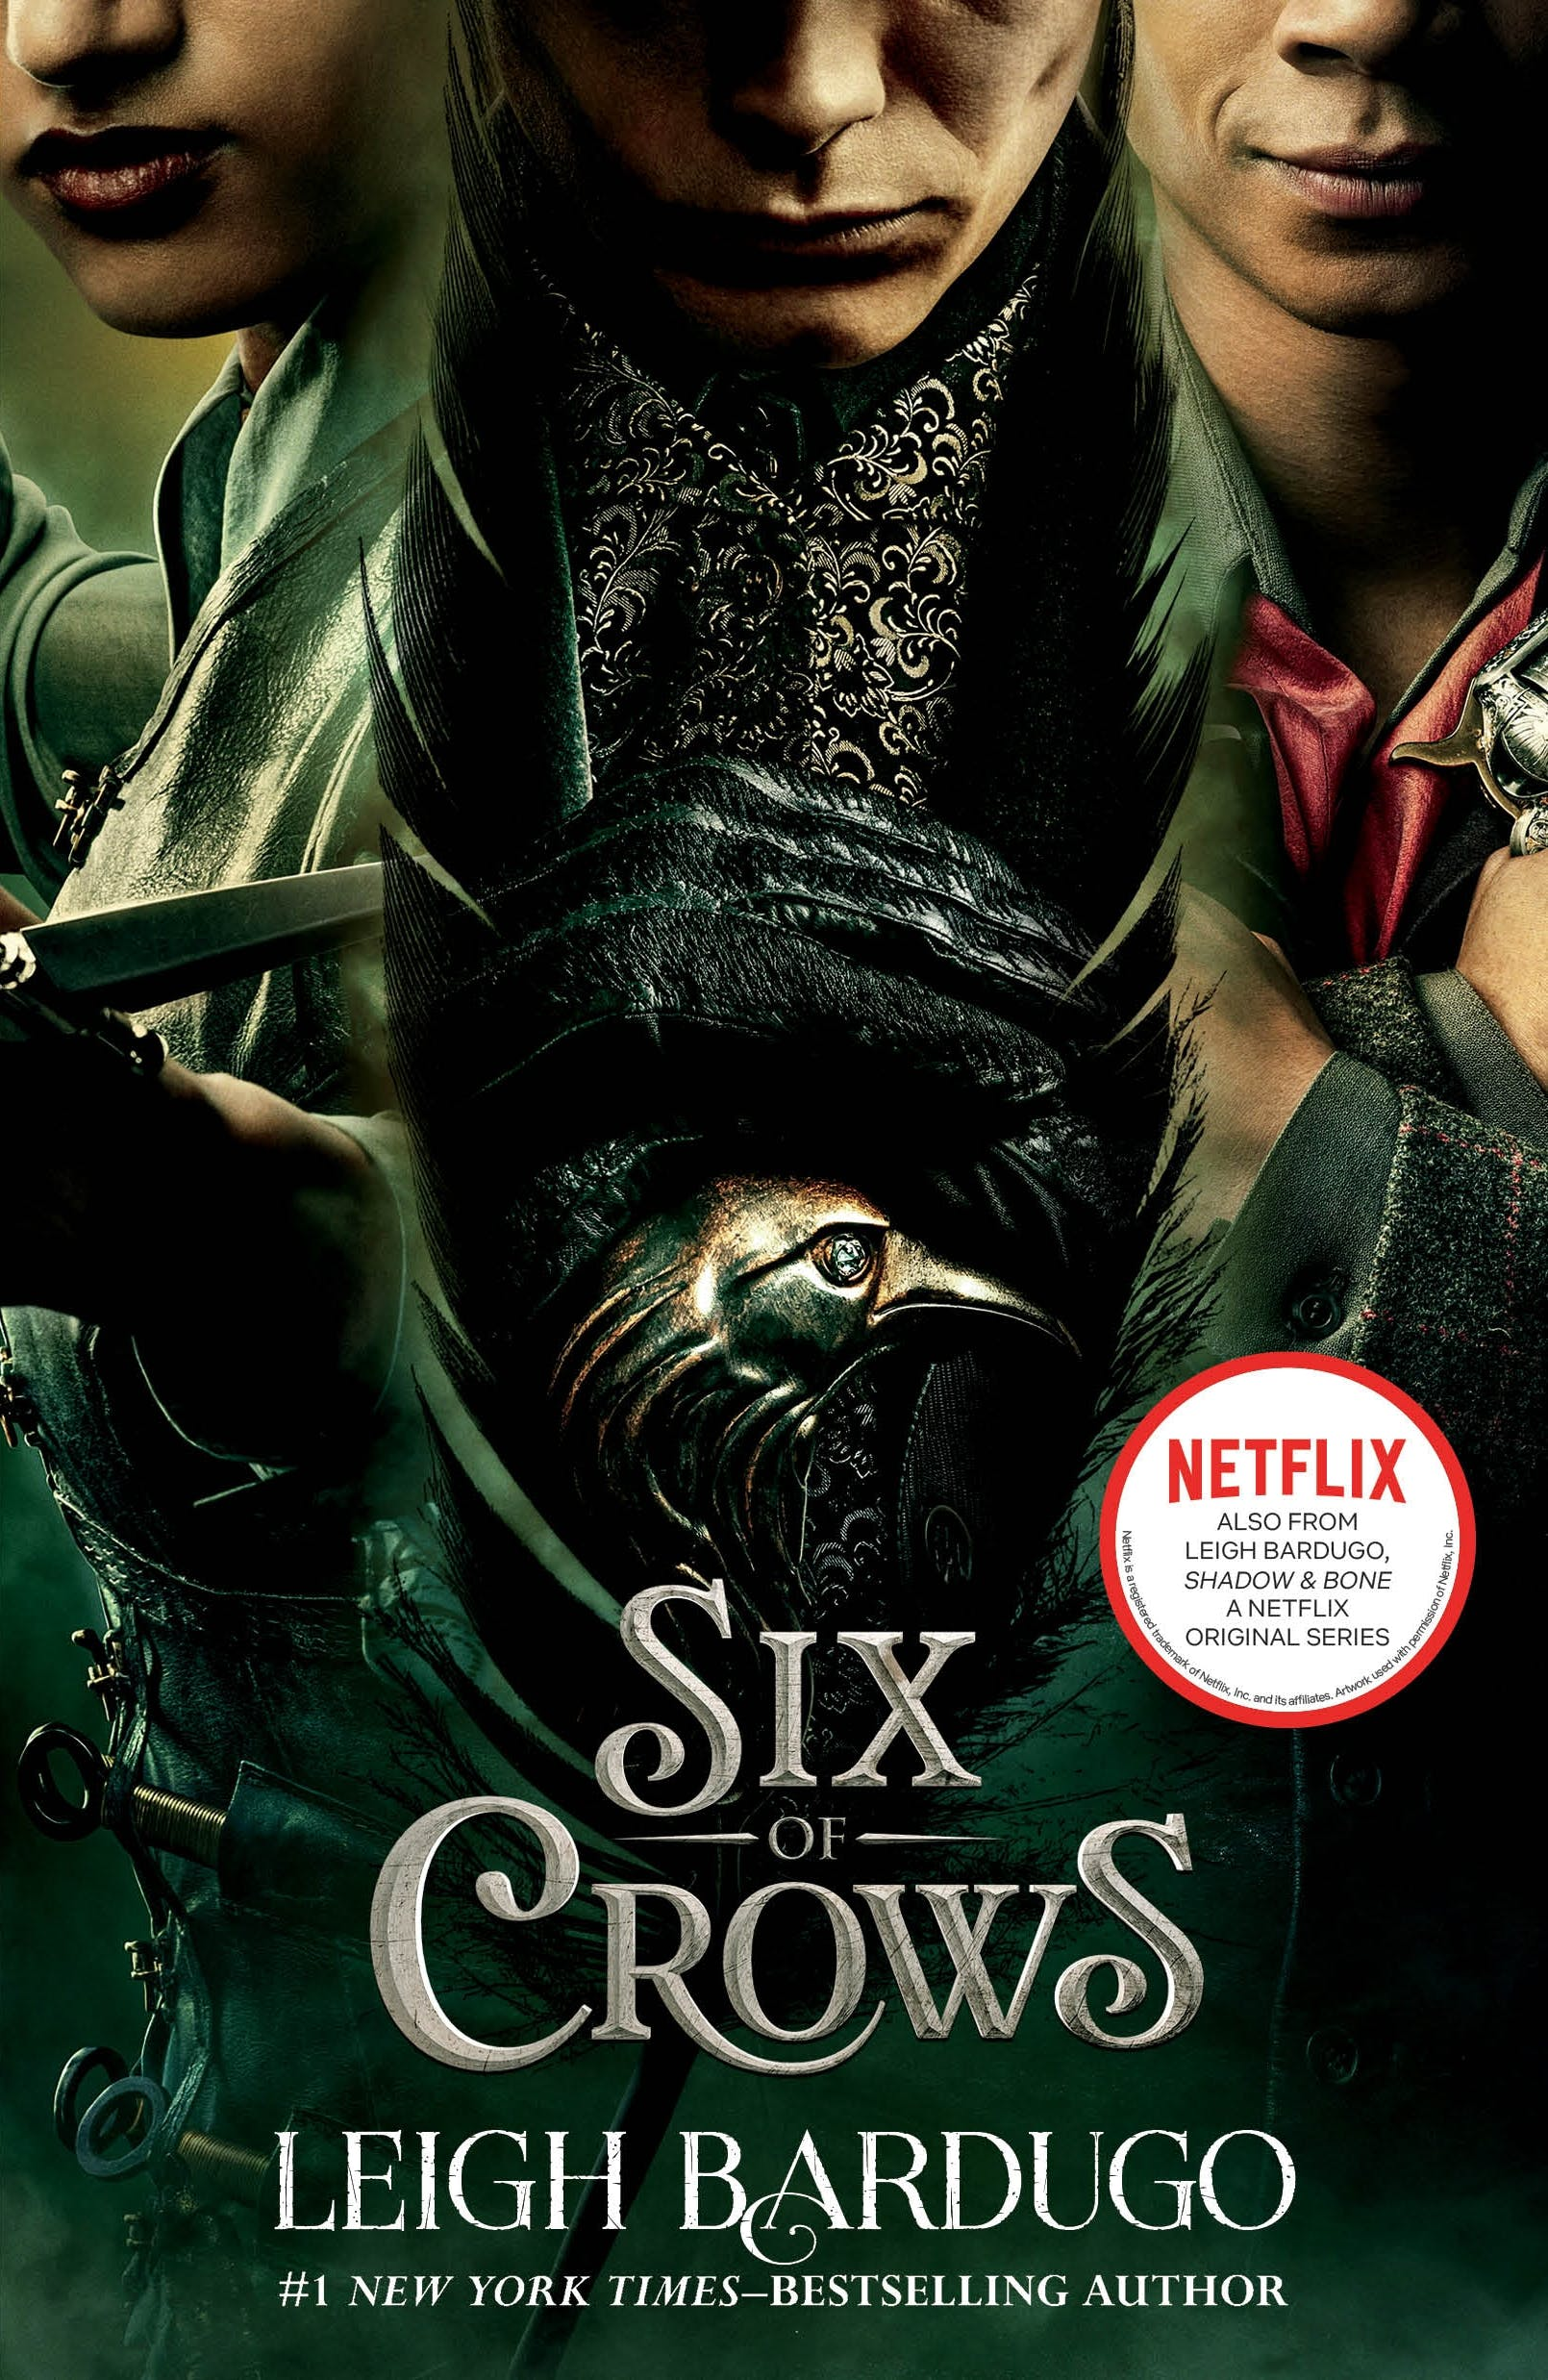 Image of Six of Crows